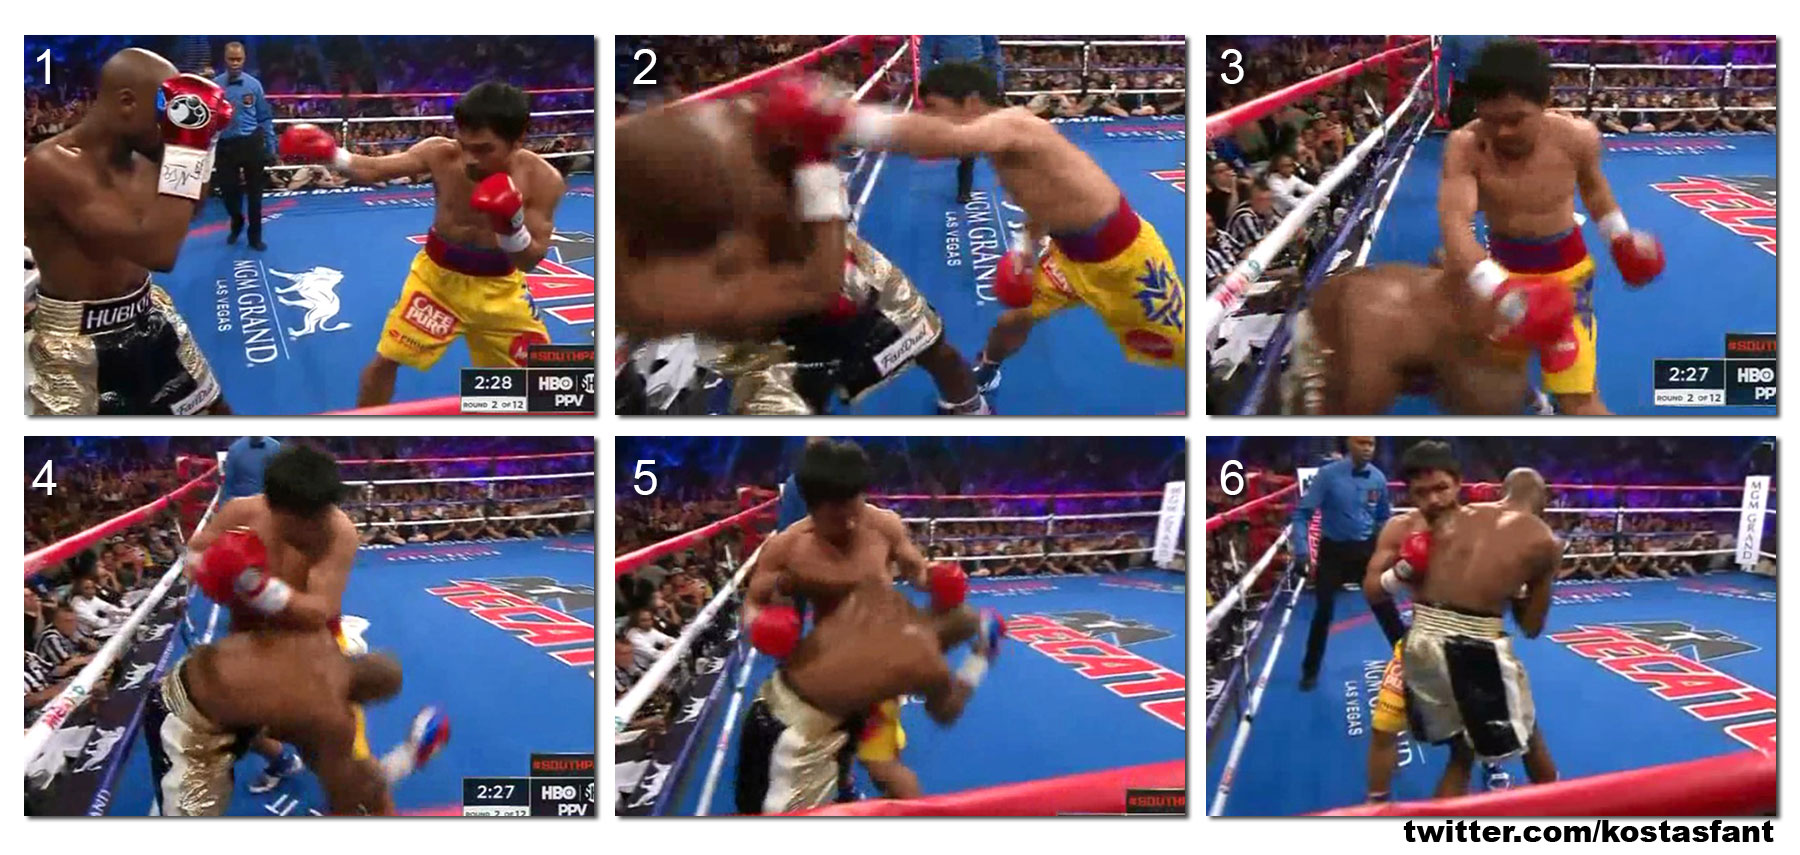 Floyd Mayweather Jr. vs. Manny Pacquiao